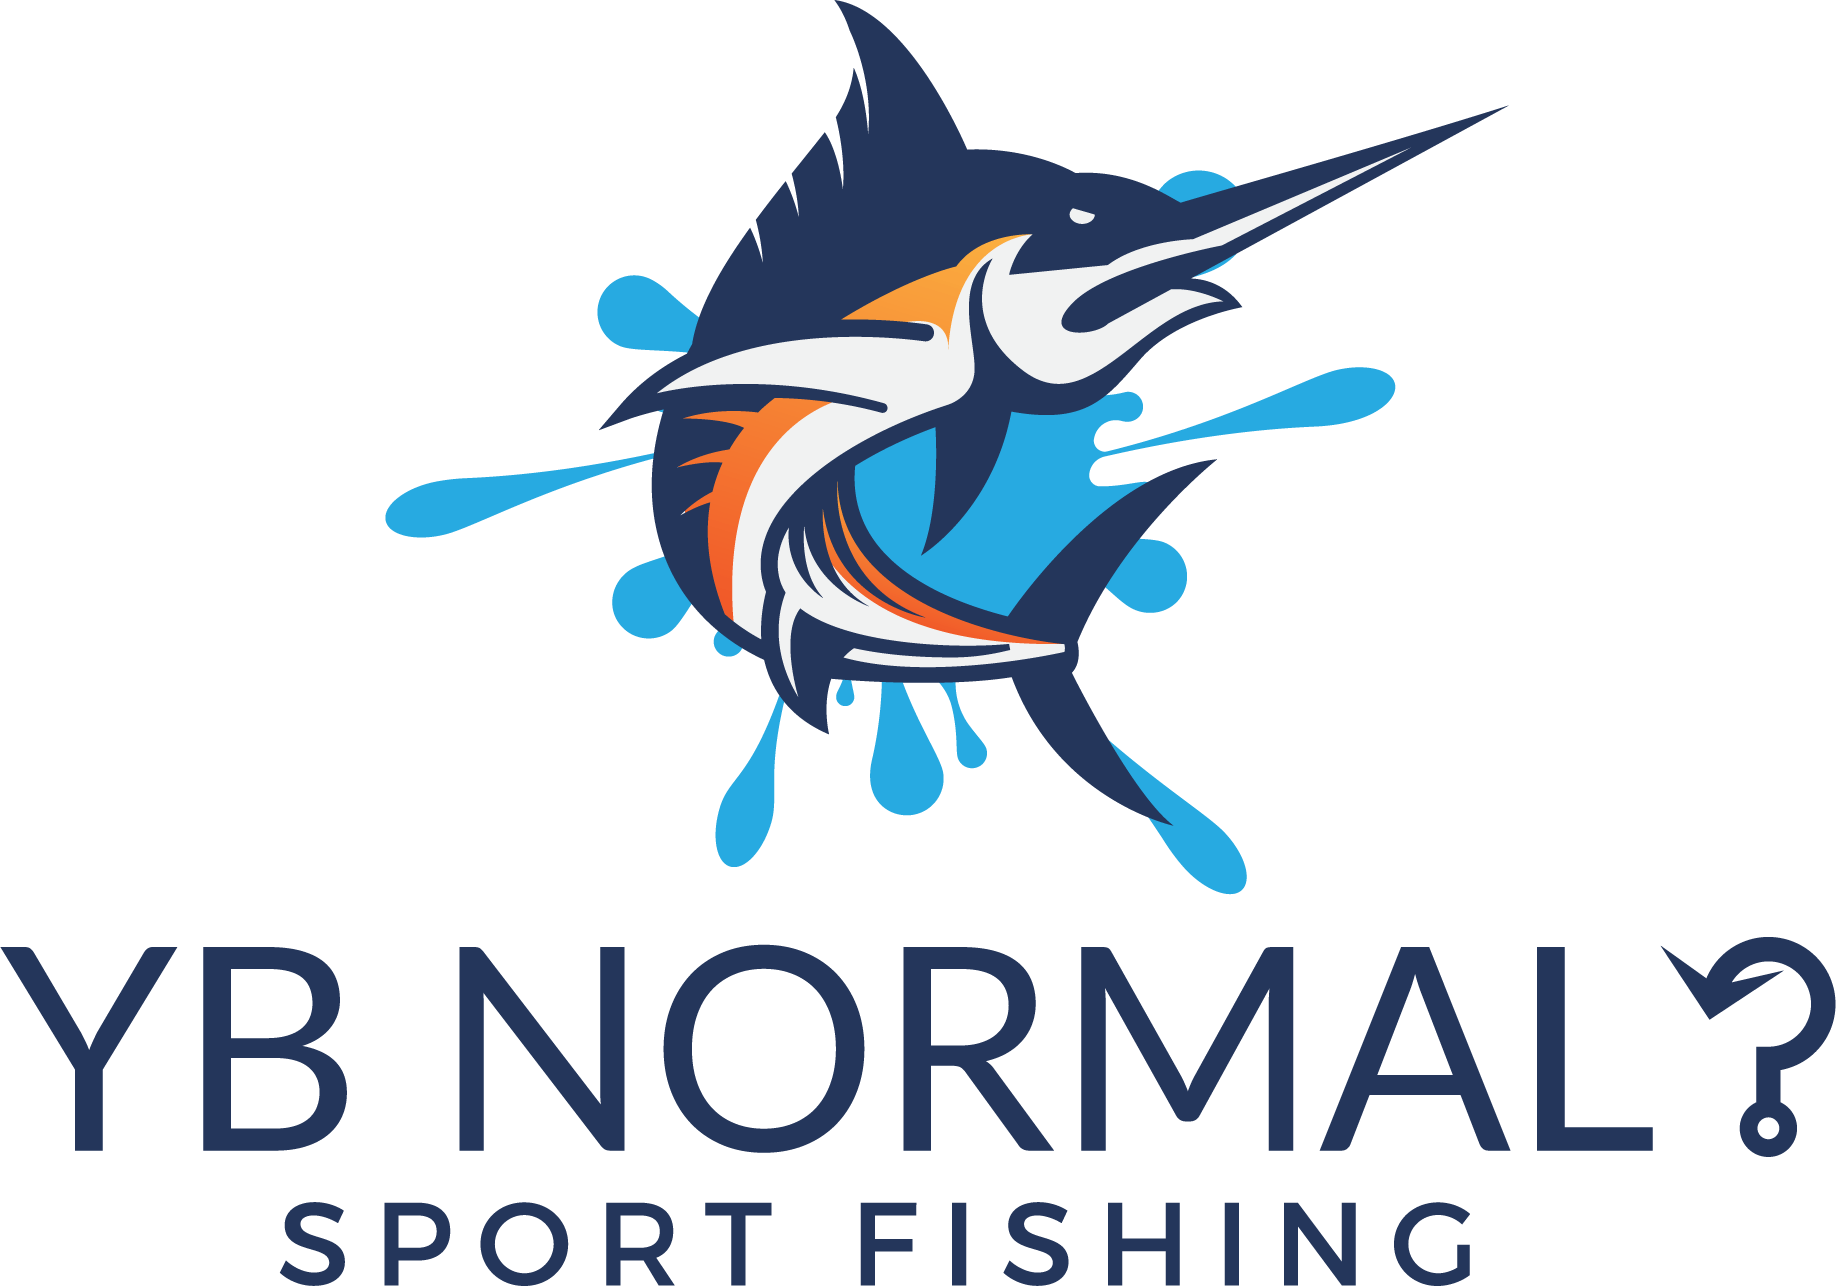 YB Normal Sport Fishing - Catch Quality Fish